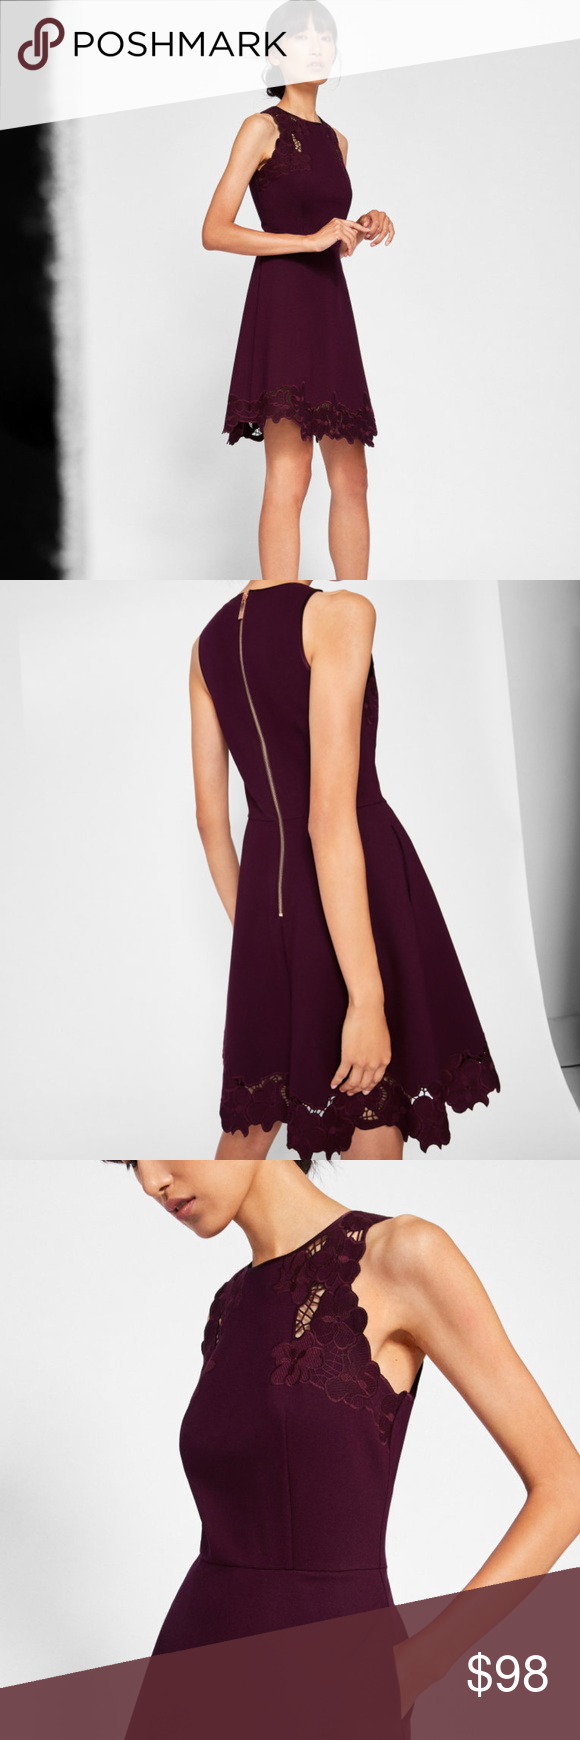 3f1357573c Ted Baker London Skater Dress NWT 68% off Ted Baker London EMMONA  Embroidered Skater Dress in maroon